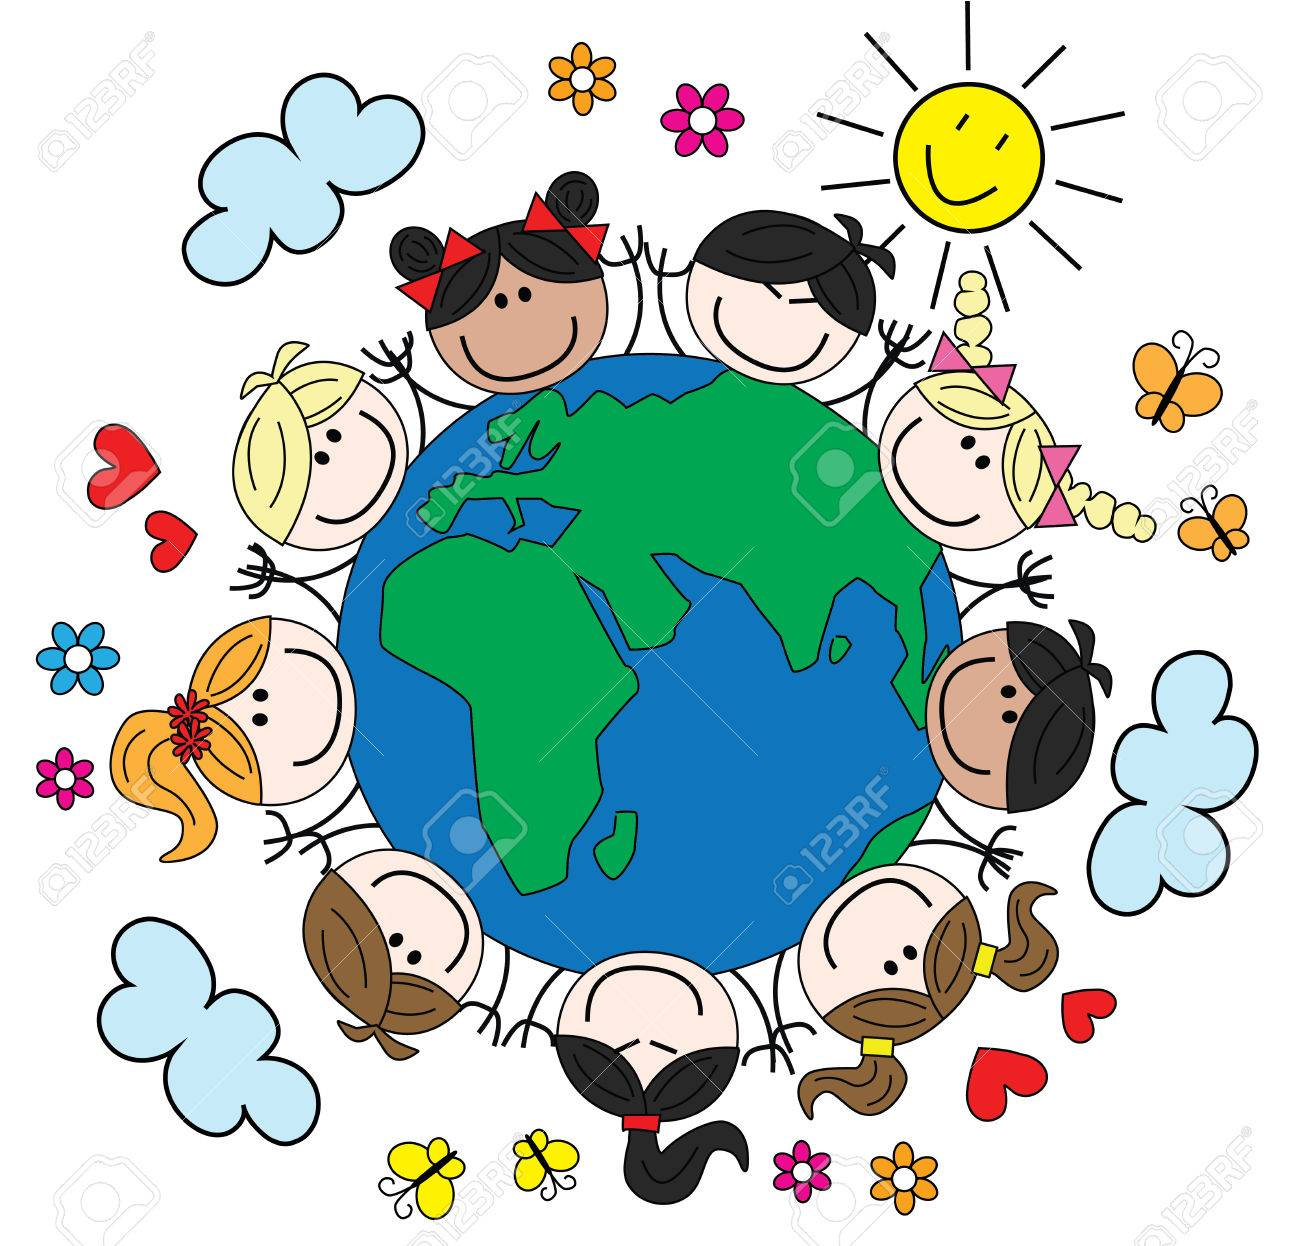 Our World Clipart.